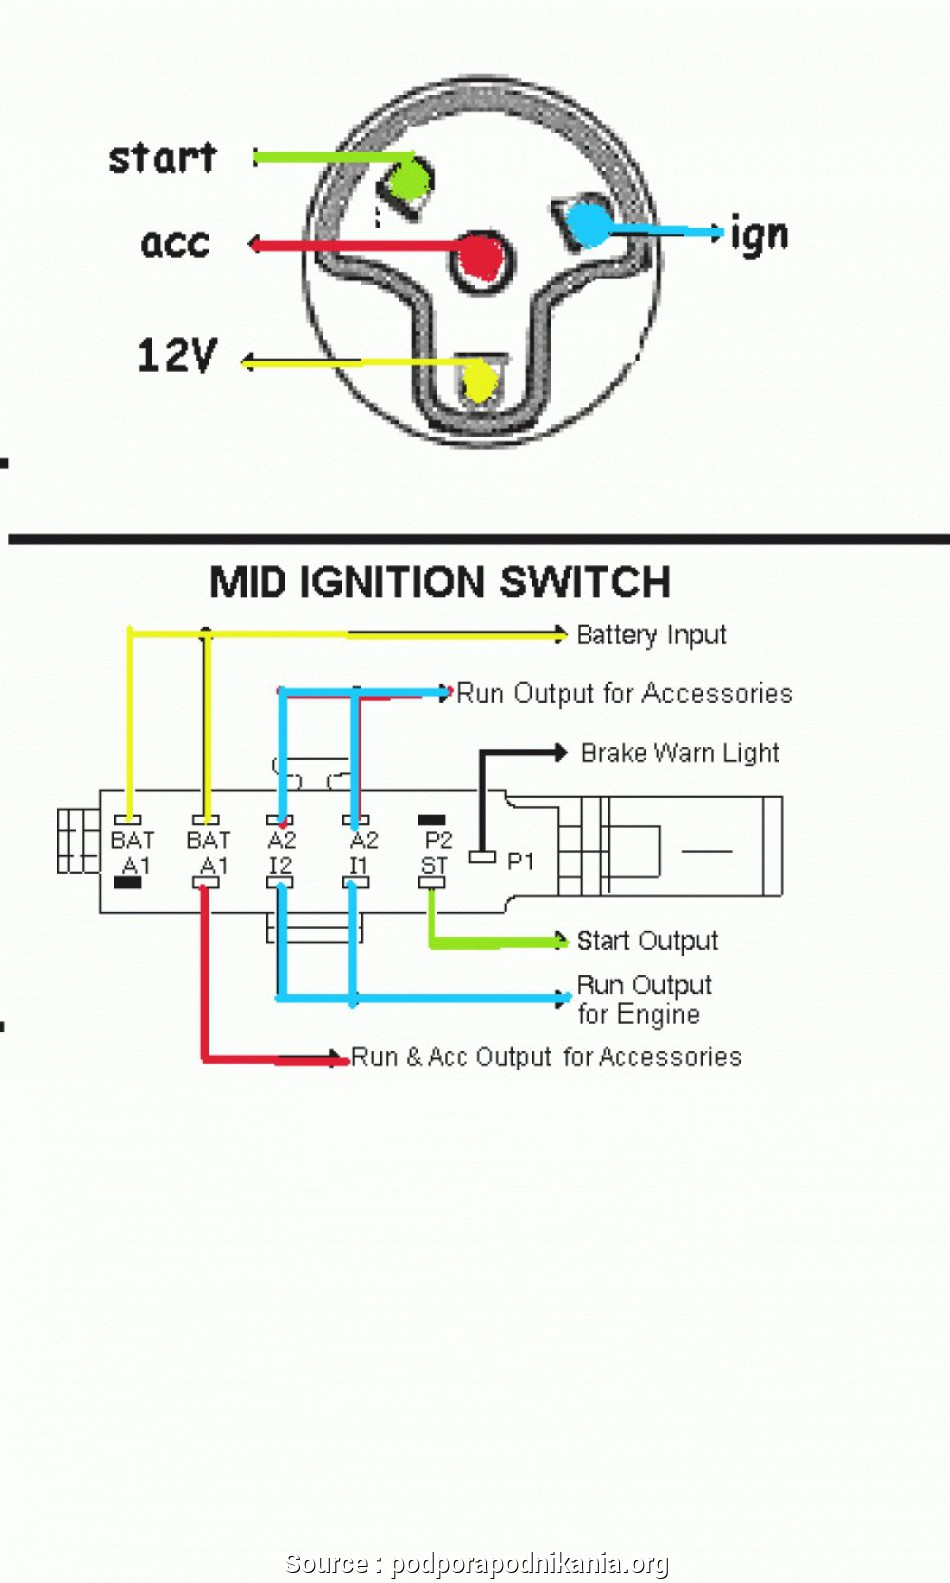 OY_2064] Ignition Switch Wiring Diagram From 6 Wire To 4 Wire Download  DiagramPhot Oliti Pap Mohammedshrine Librar Wiring 101